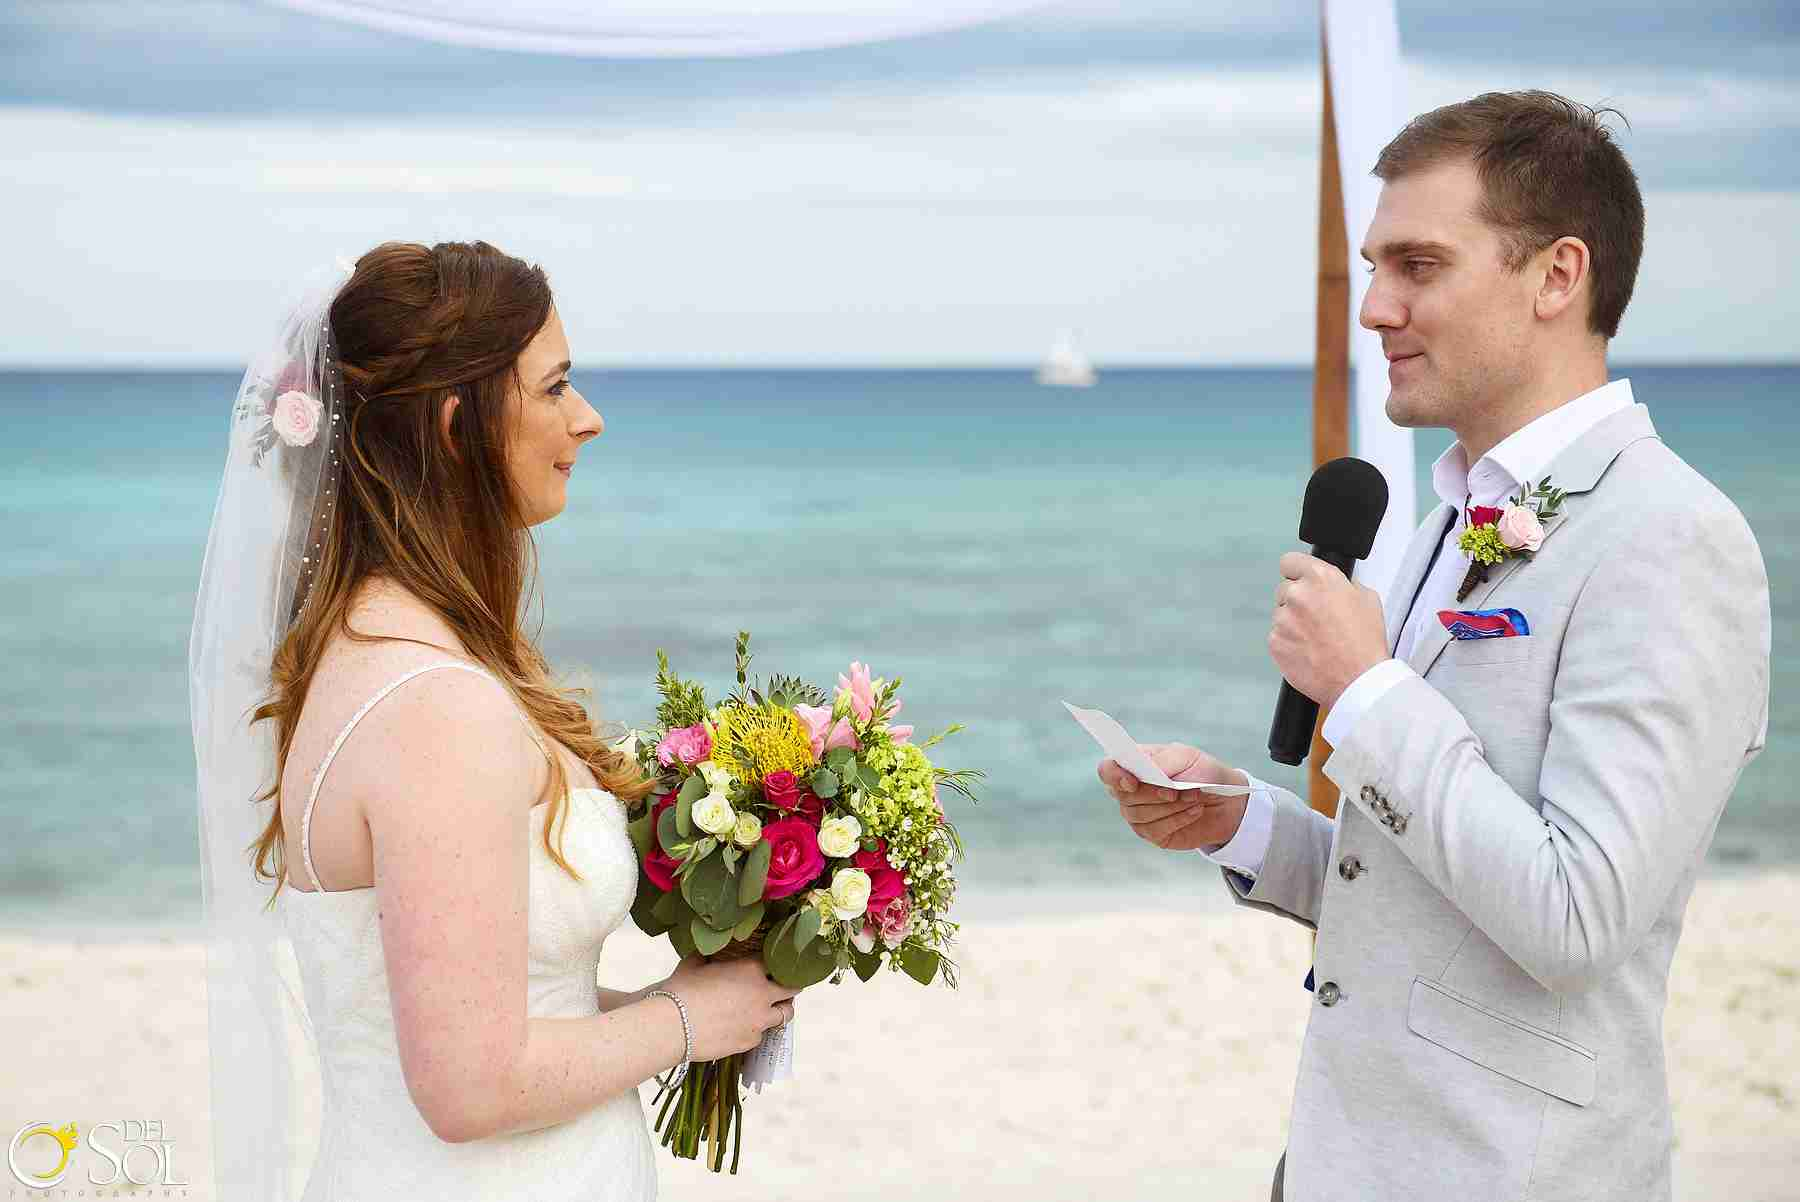 Brooke and Stephen , Beach Wedding at Blue Venado Beach Club, Playa del Carmen, Mexico. Photos bt Del Sol Photography.